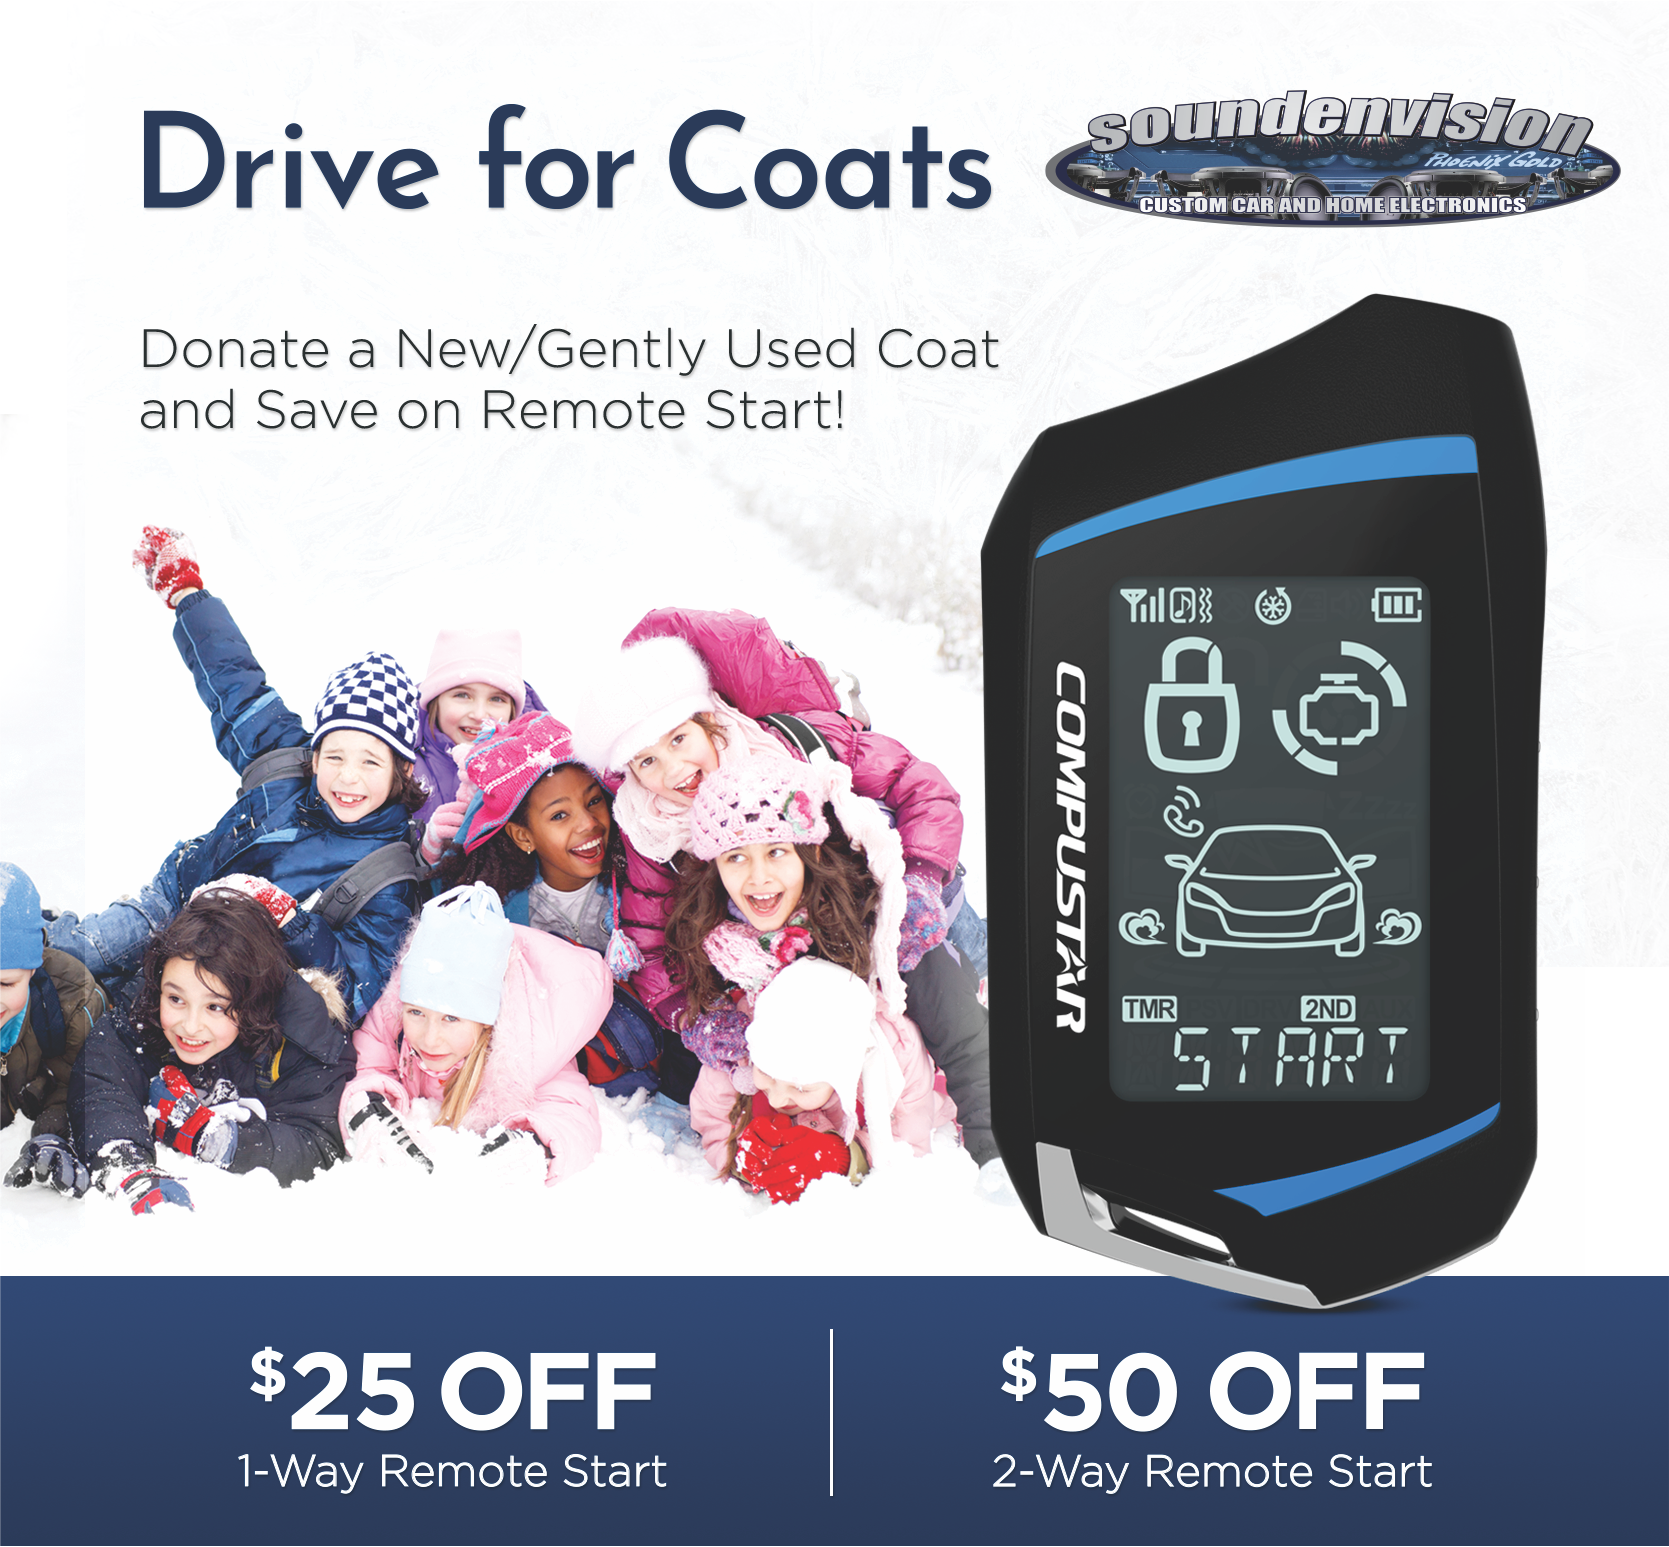 Drive for Coats - Soundenvision